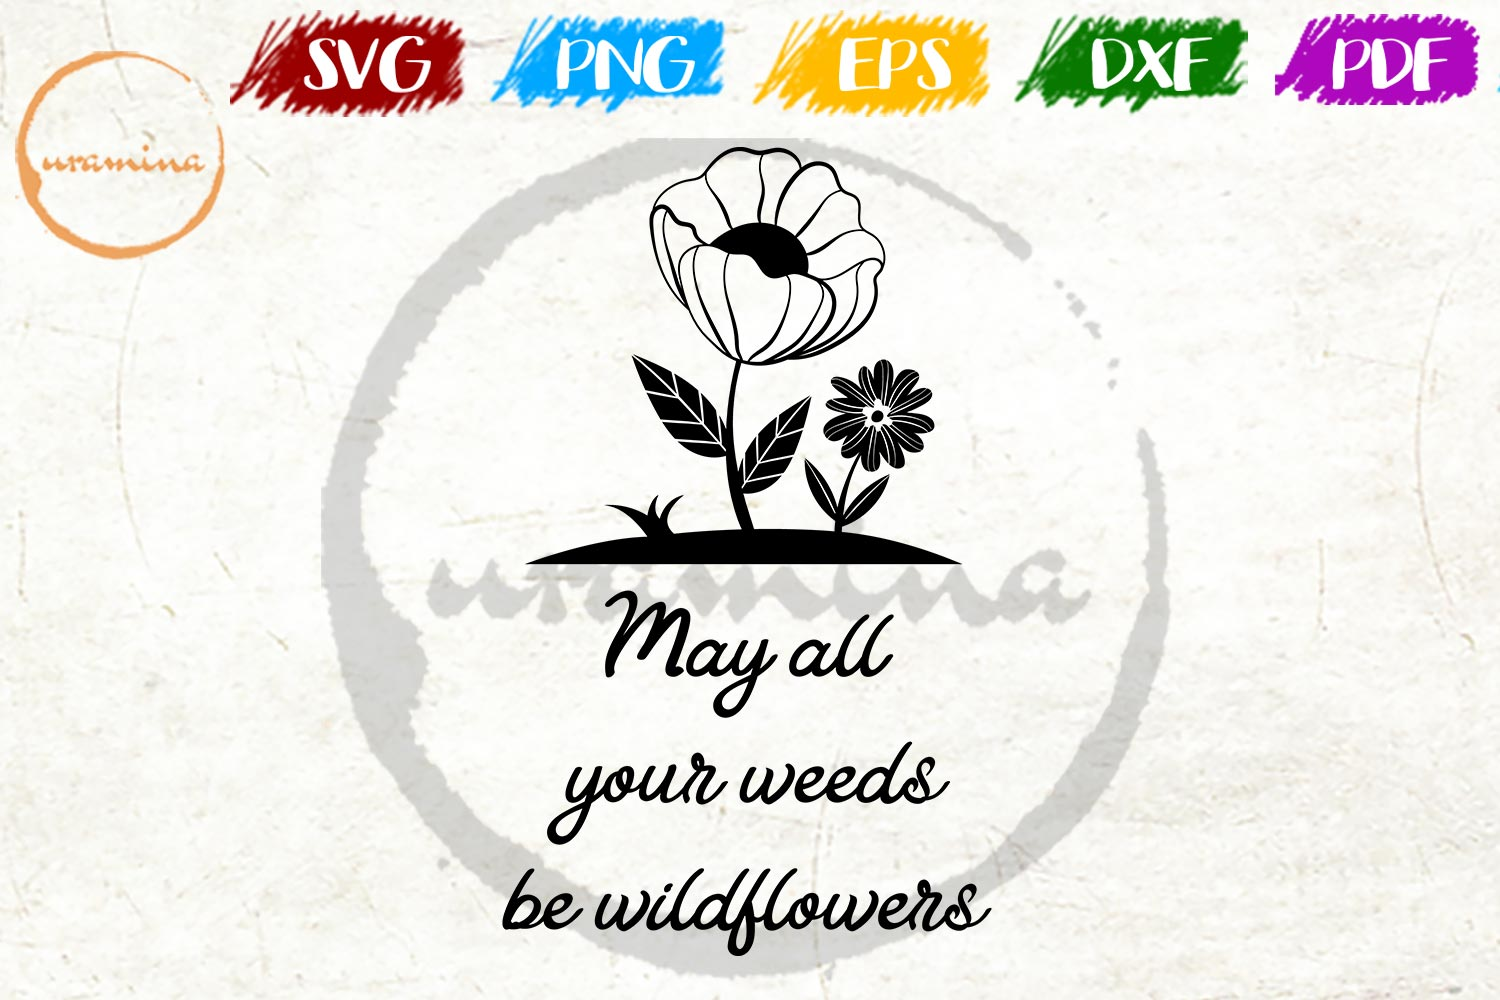 Download Free May All Your Weeds Be Wildflowers Graphic By Uramina Creative for Cricut Explore, Silhouette and other cutting machines.